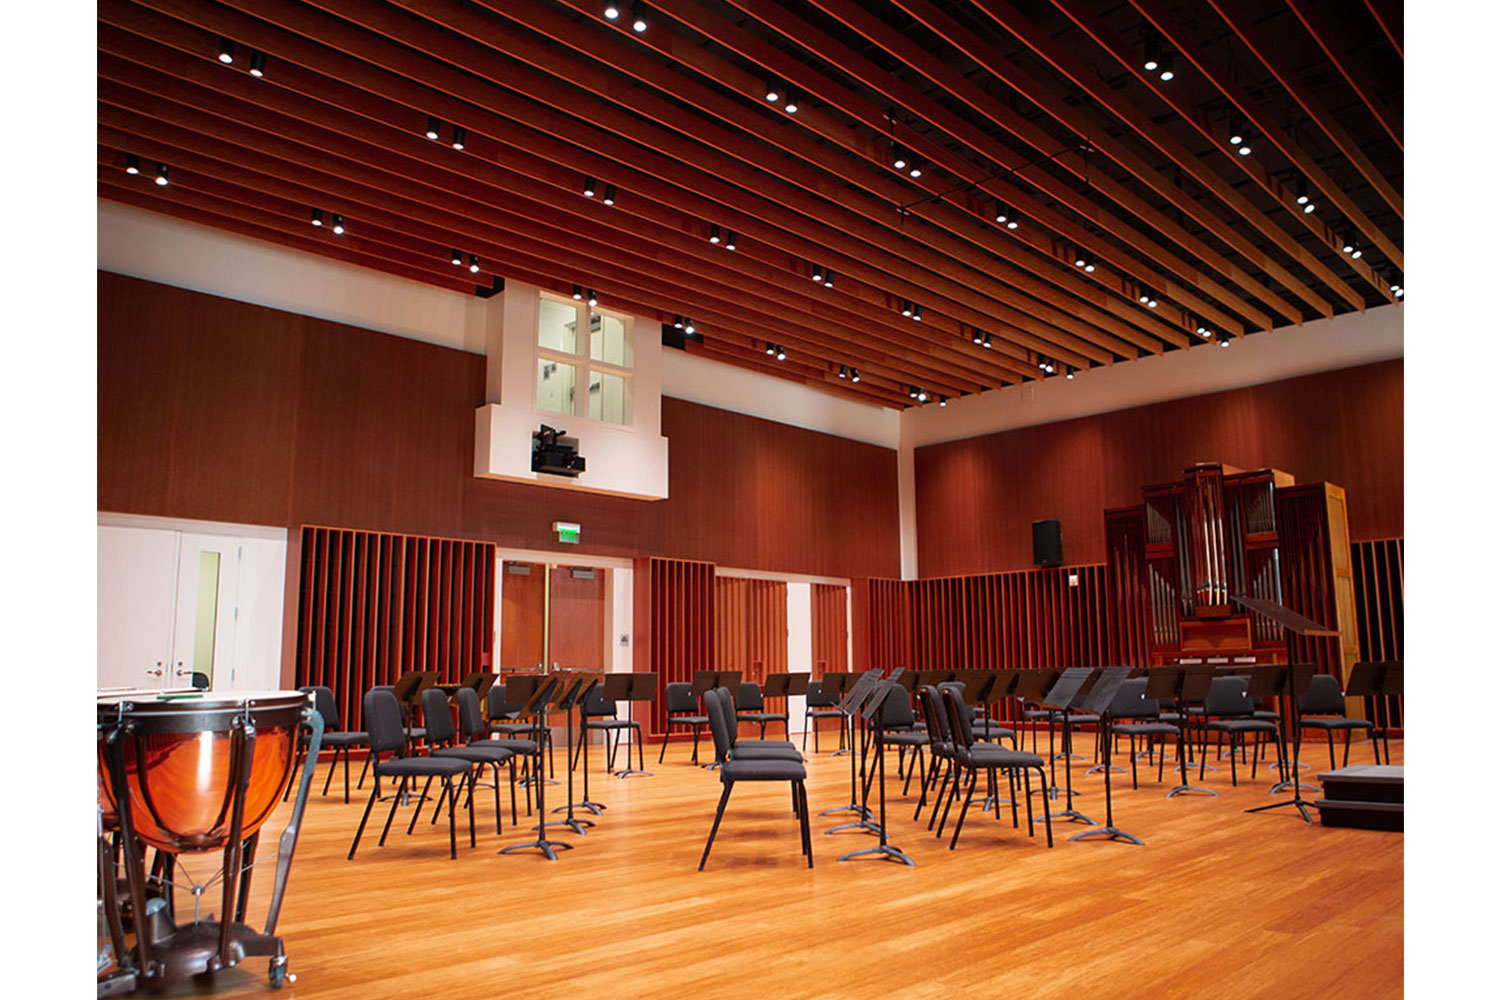 Concordia University Irvine, WSDG was commissioned for the design, acoustic consulting and systems integration of their new audio complex. Orchestra Room/Hall 2.